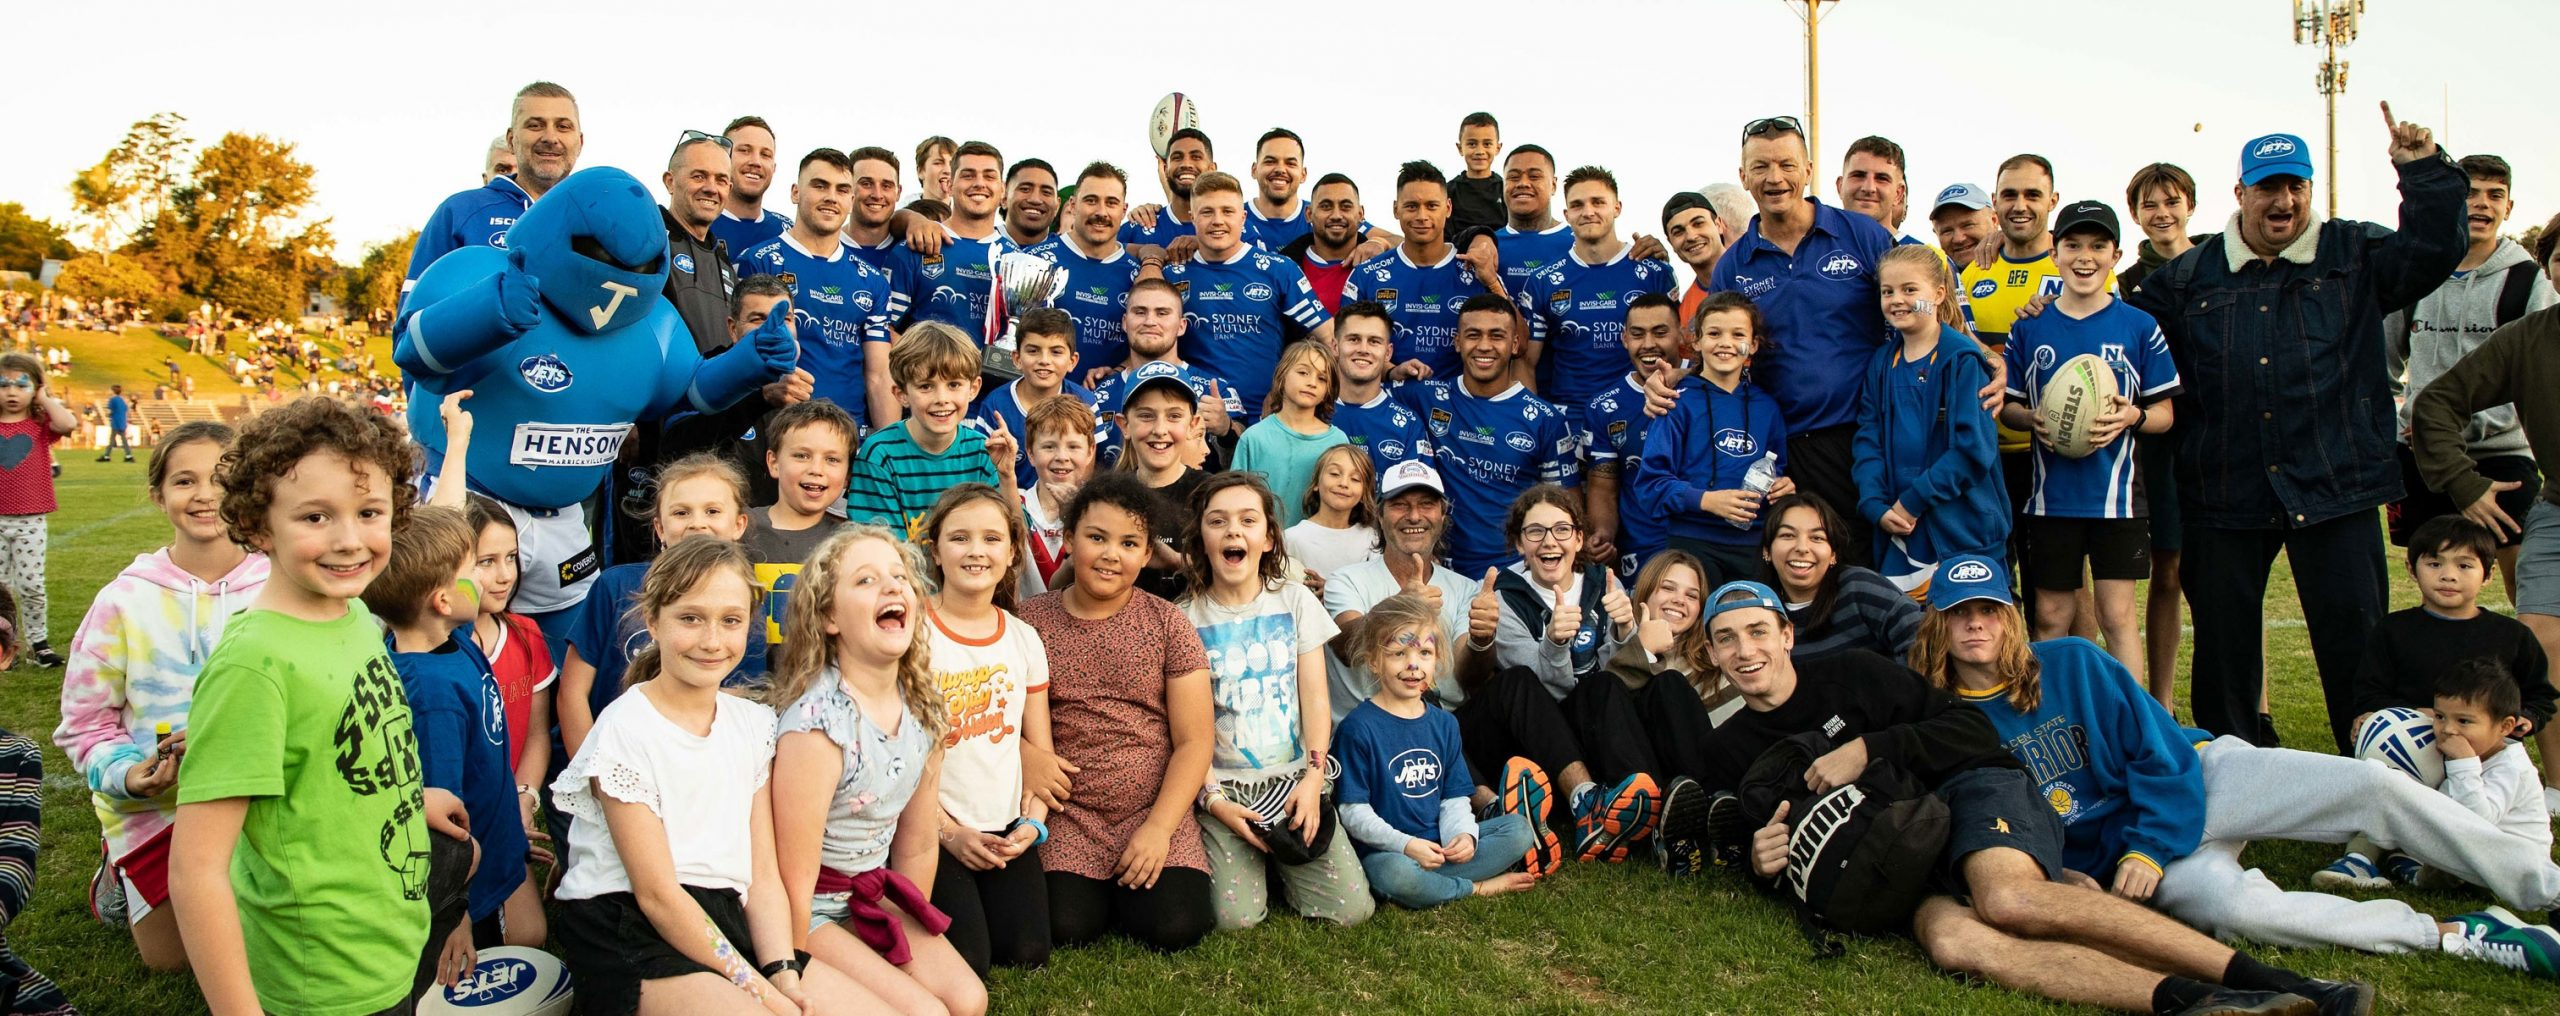 All good friends and jolly good company … the Newtown Jets players, team staff, the other-worldly Jetman and a few young supporters get together to celebrate winning the Tom Kirk Cup against St George-Illawarra at Henson Park last Saturday.     Photo: Mario Facchini, mafphotography